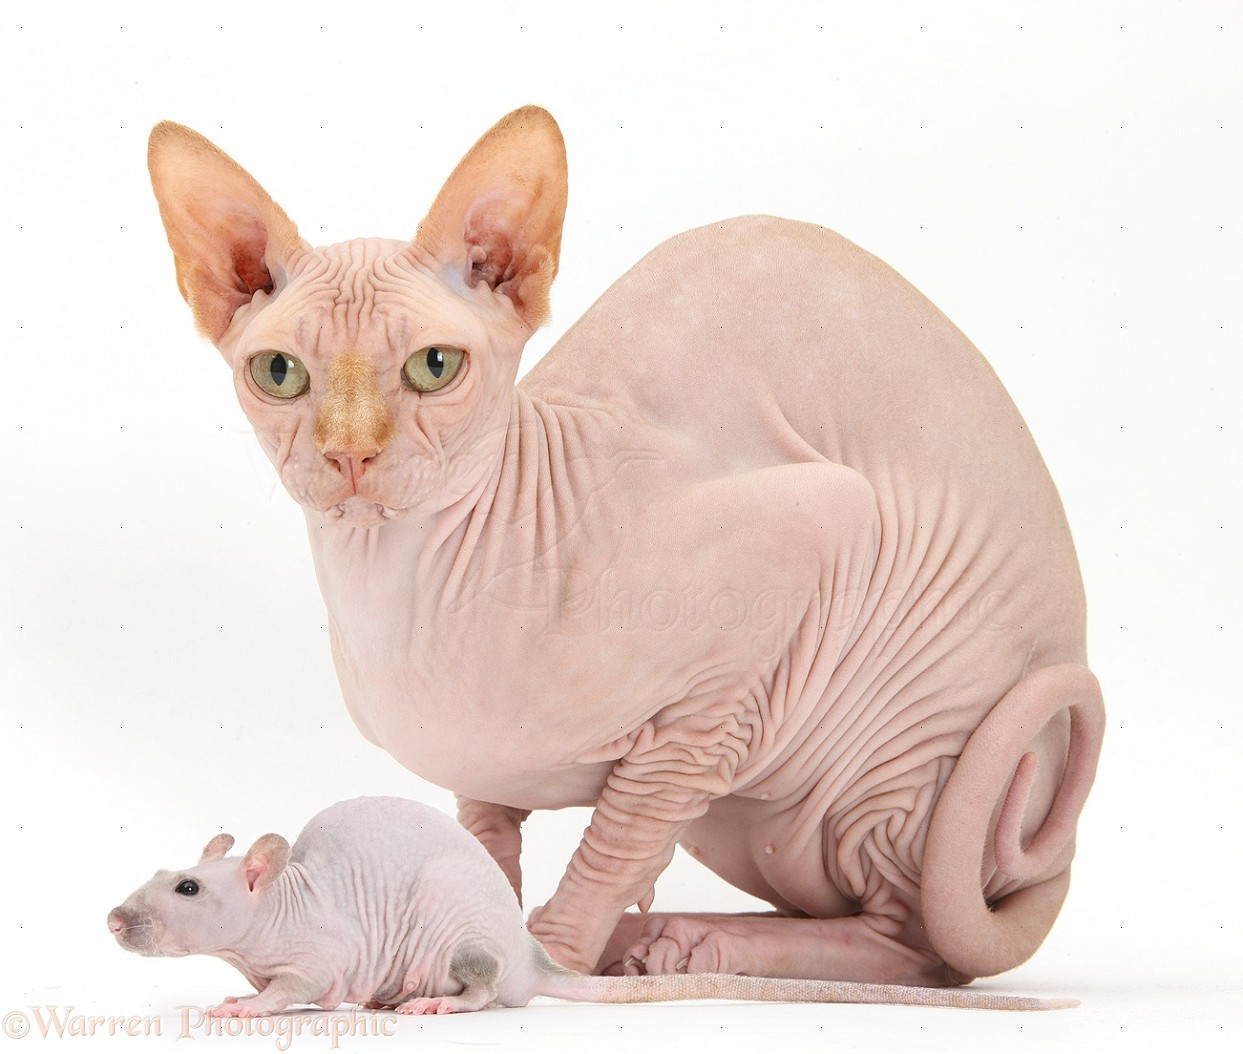 Sphynx Cat: Sphynx Sphynx Cat And Sphynx Rat Breed